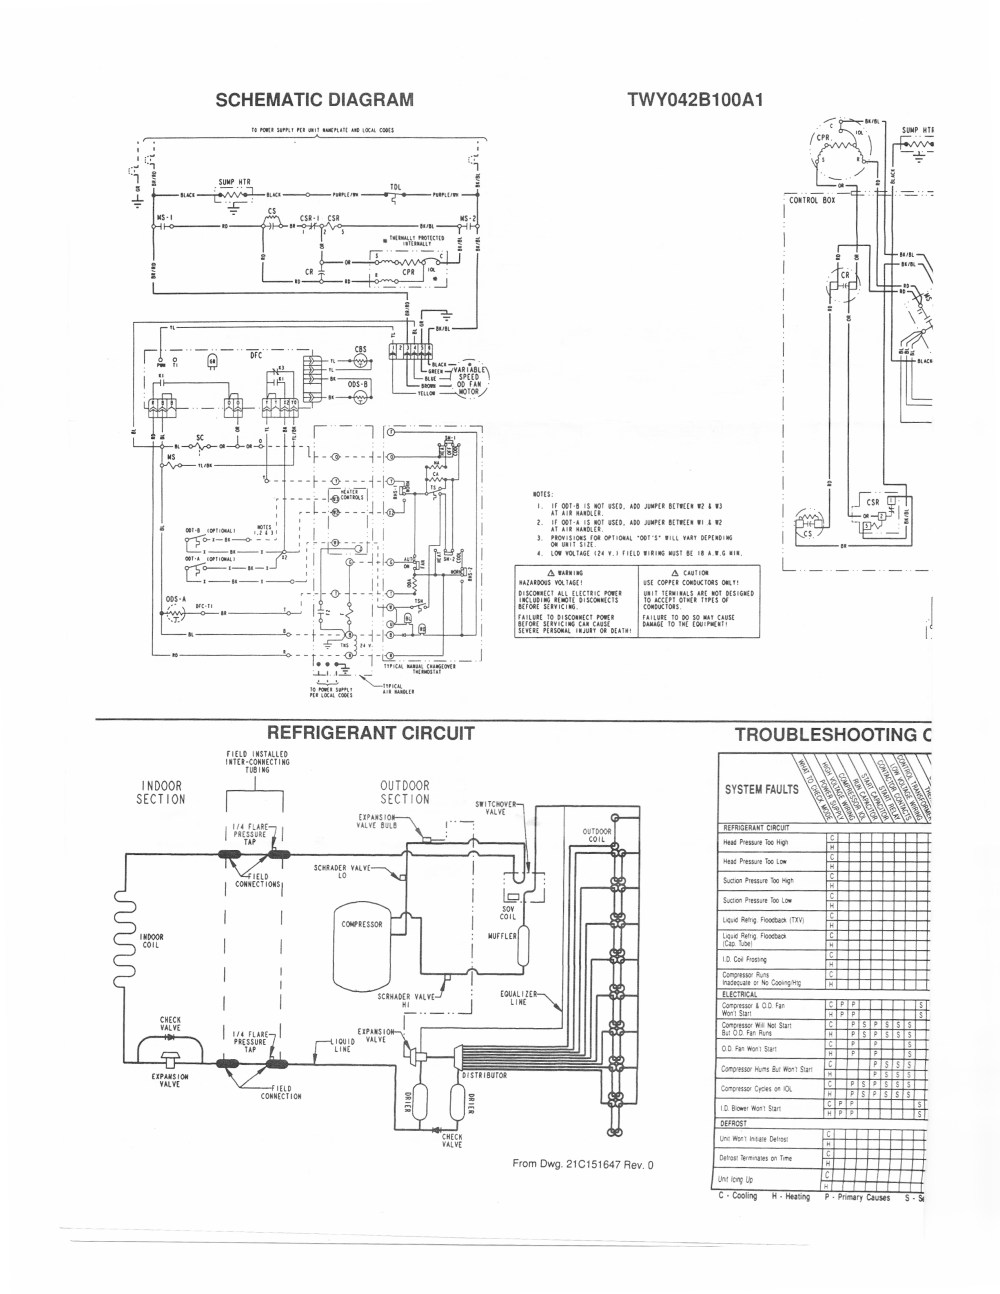 medium resolution of trane heat pump thermostat wiring diagram trane air conditioner wiring schematic handler diagram for solidfonts